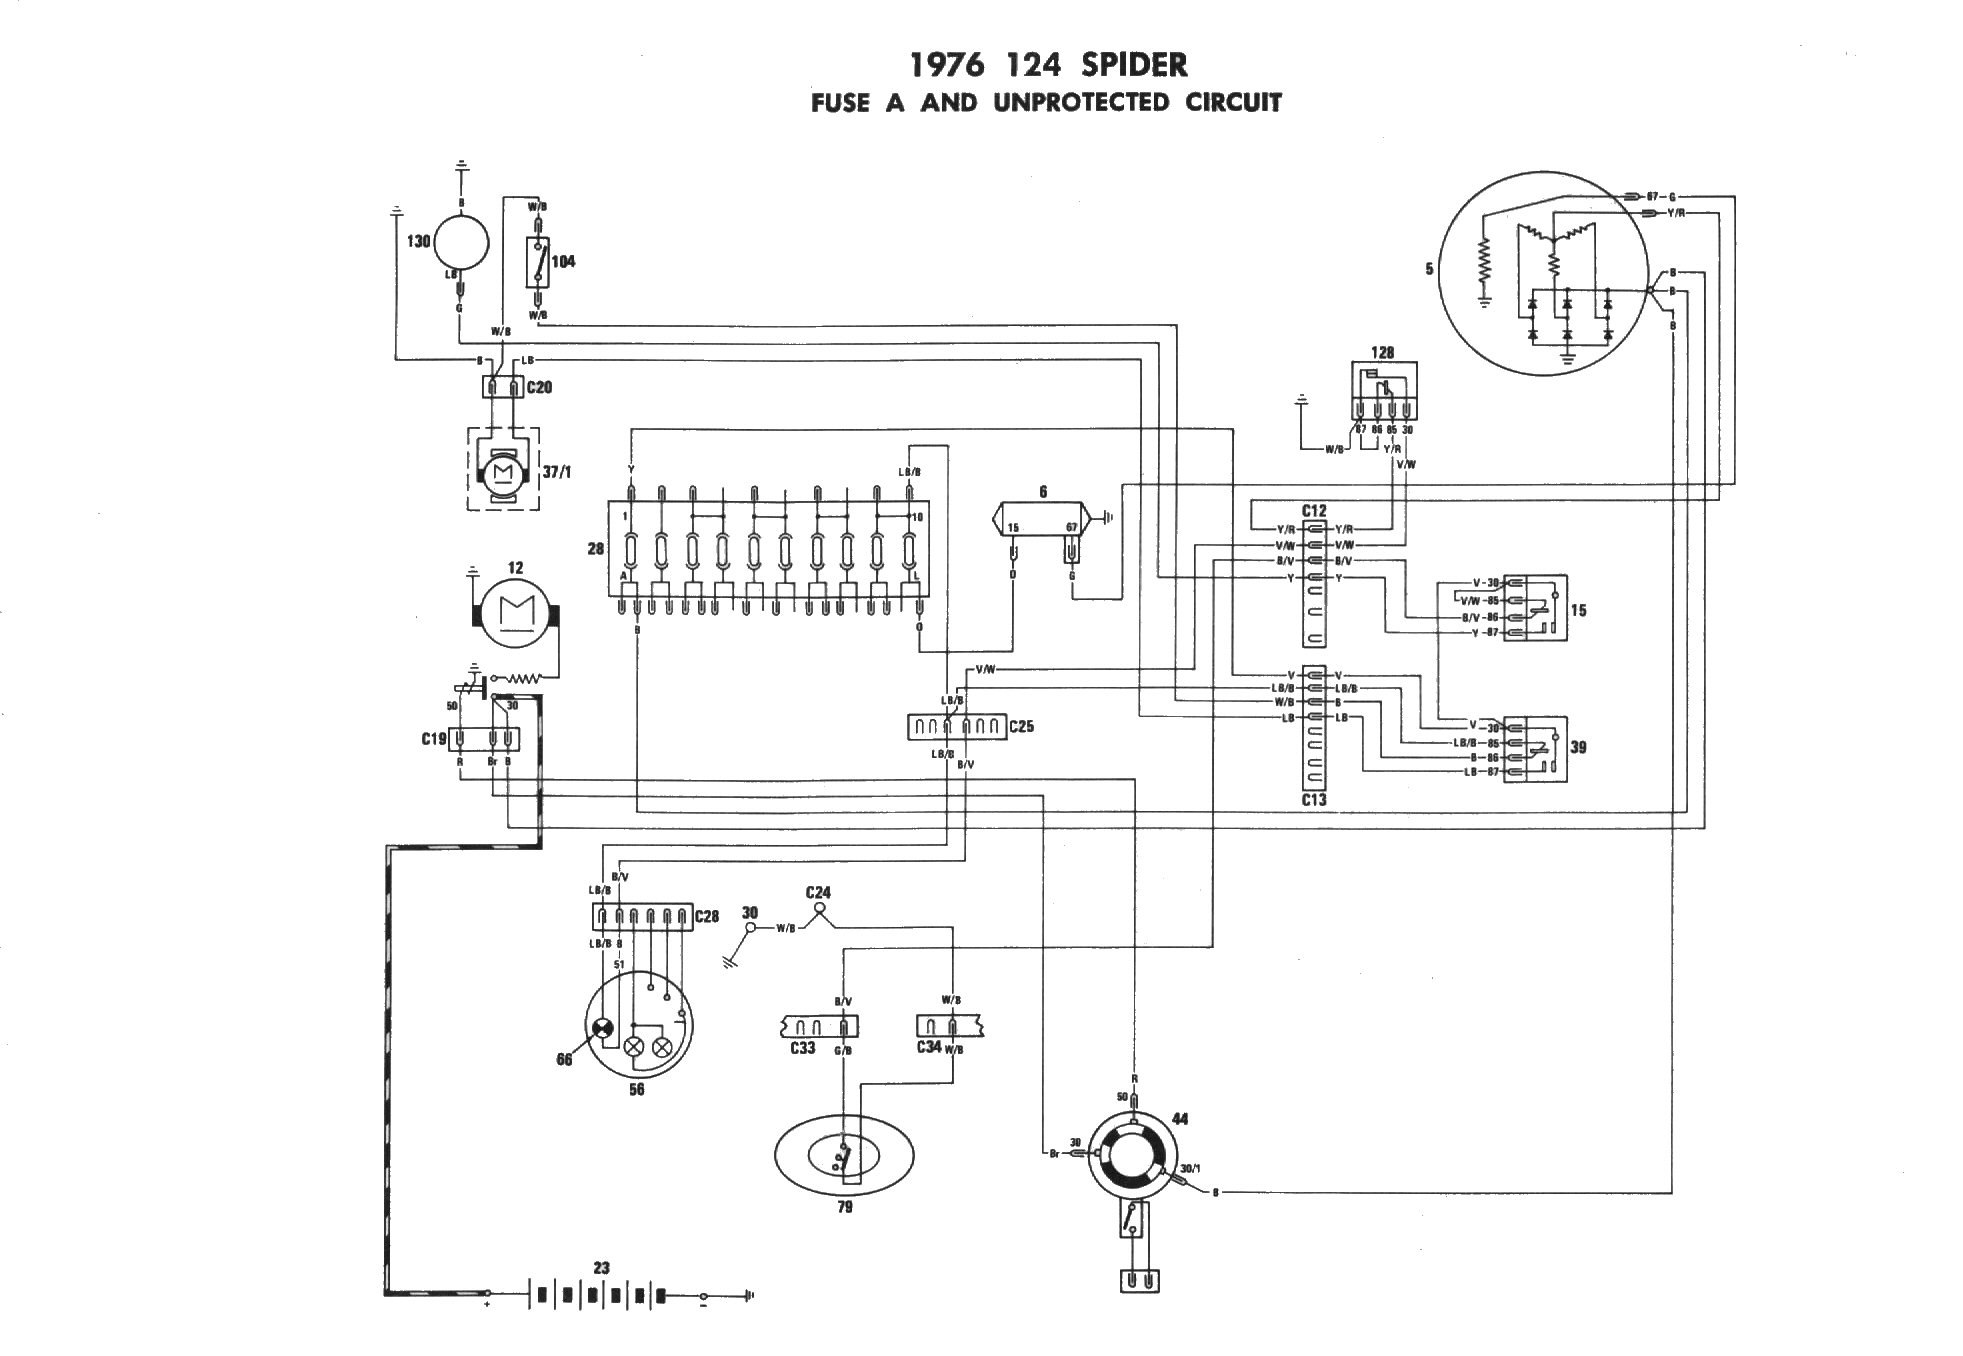 1986 fiat x1 9 wiper fuse box diagram